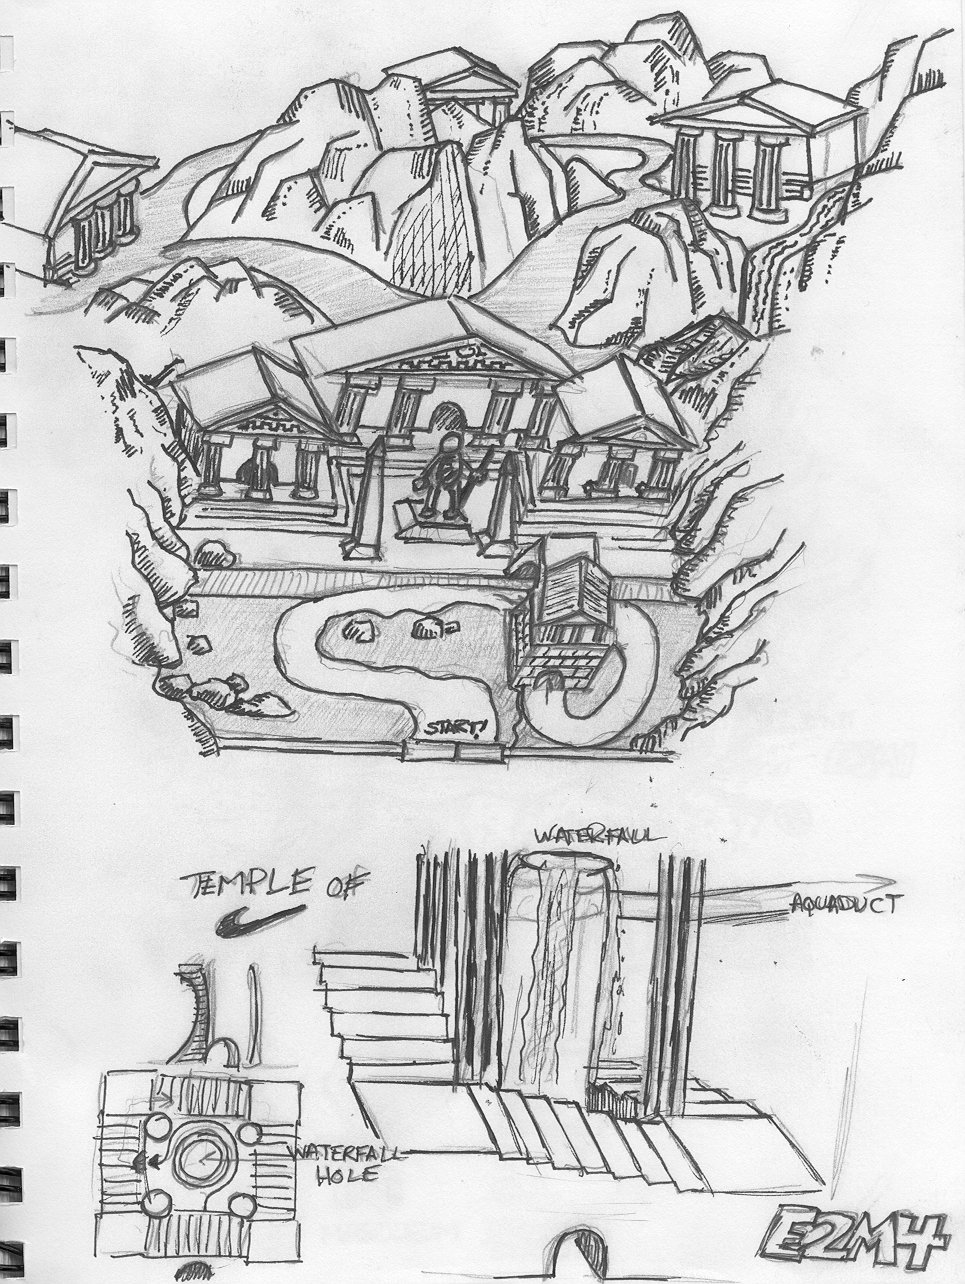 My sketch of the Temple of Nike part of E2M4.